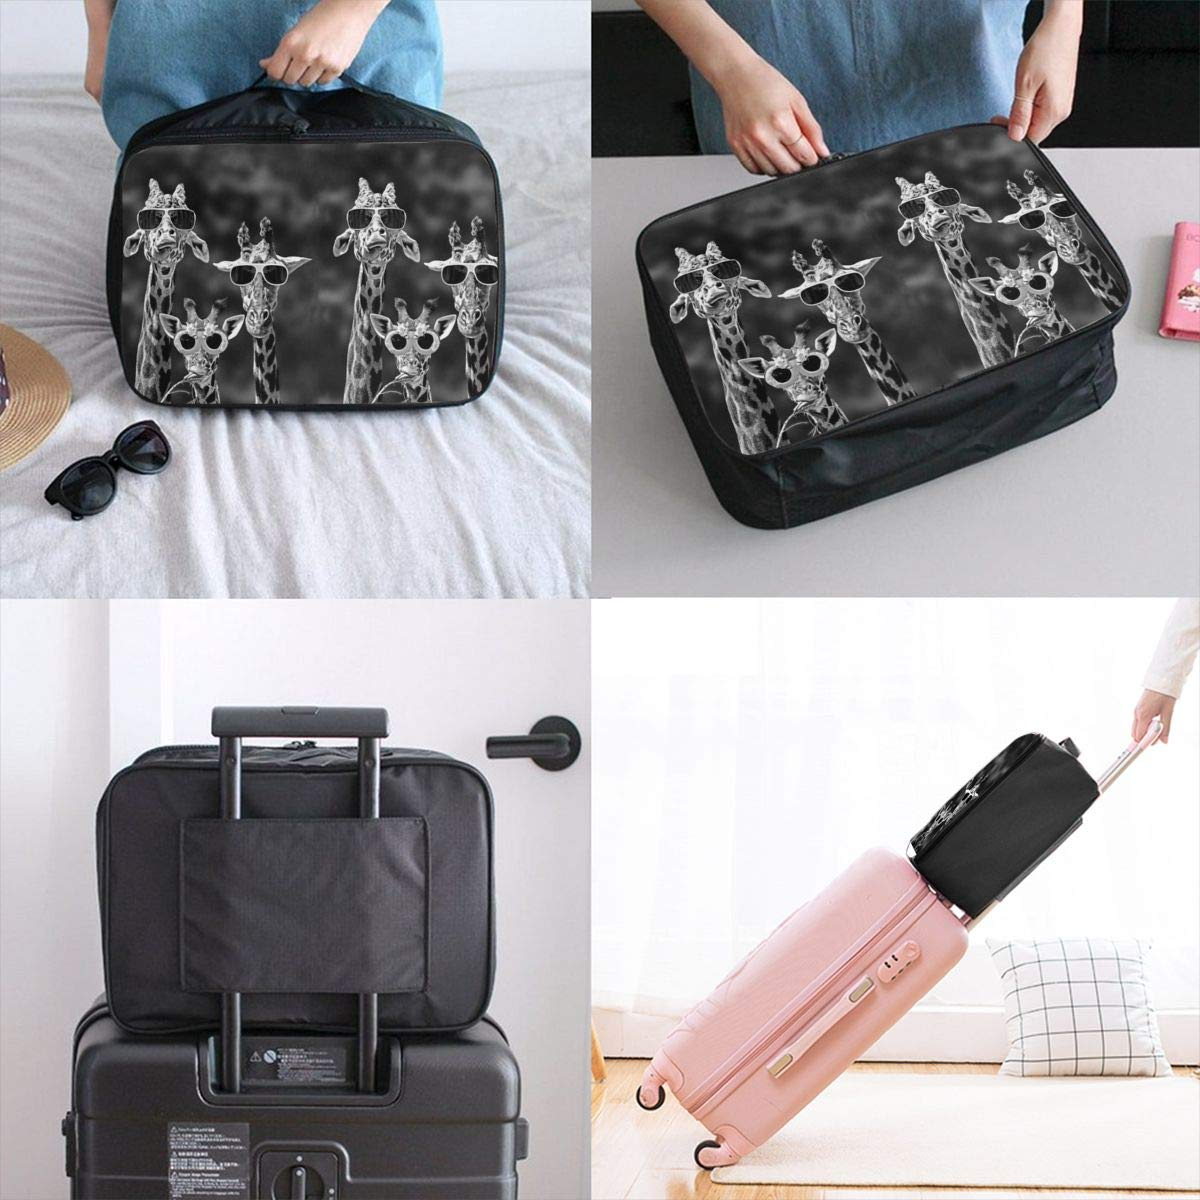 Vintage Giraffes Whith Sunglasses Travel Lightweight Waterproof Foldable Storage Carry Luggage Duffle Tote Bag Large Capacity In Trolley Handle Bags 6x11x15 Inch